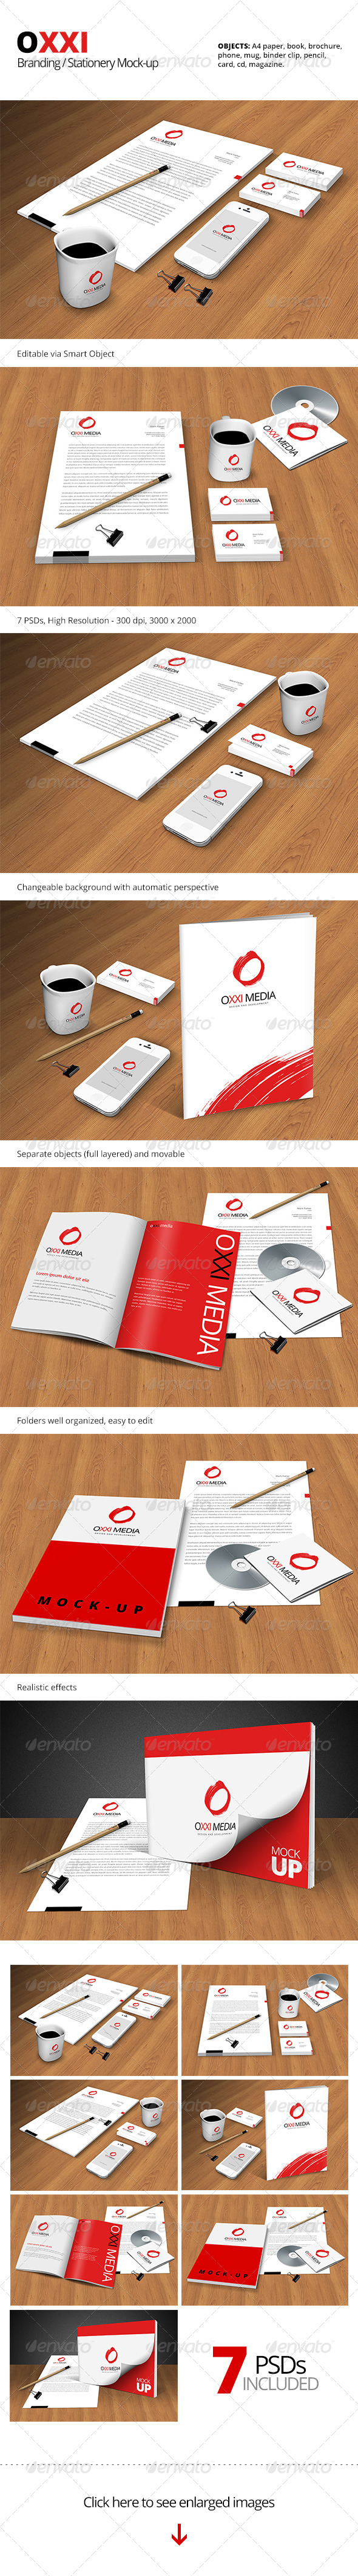 GraphicRiver OXXI Branding Stationery Mock-up 5919731